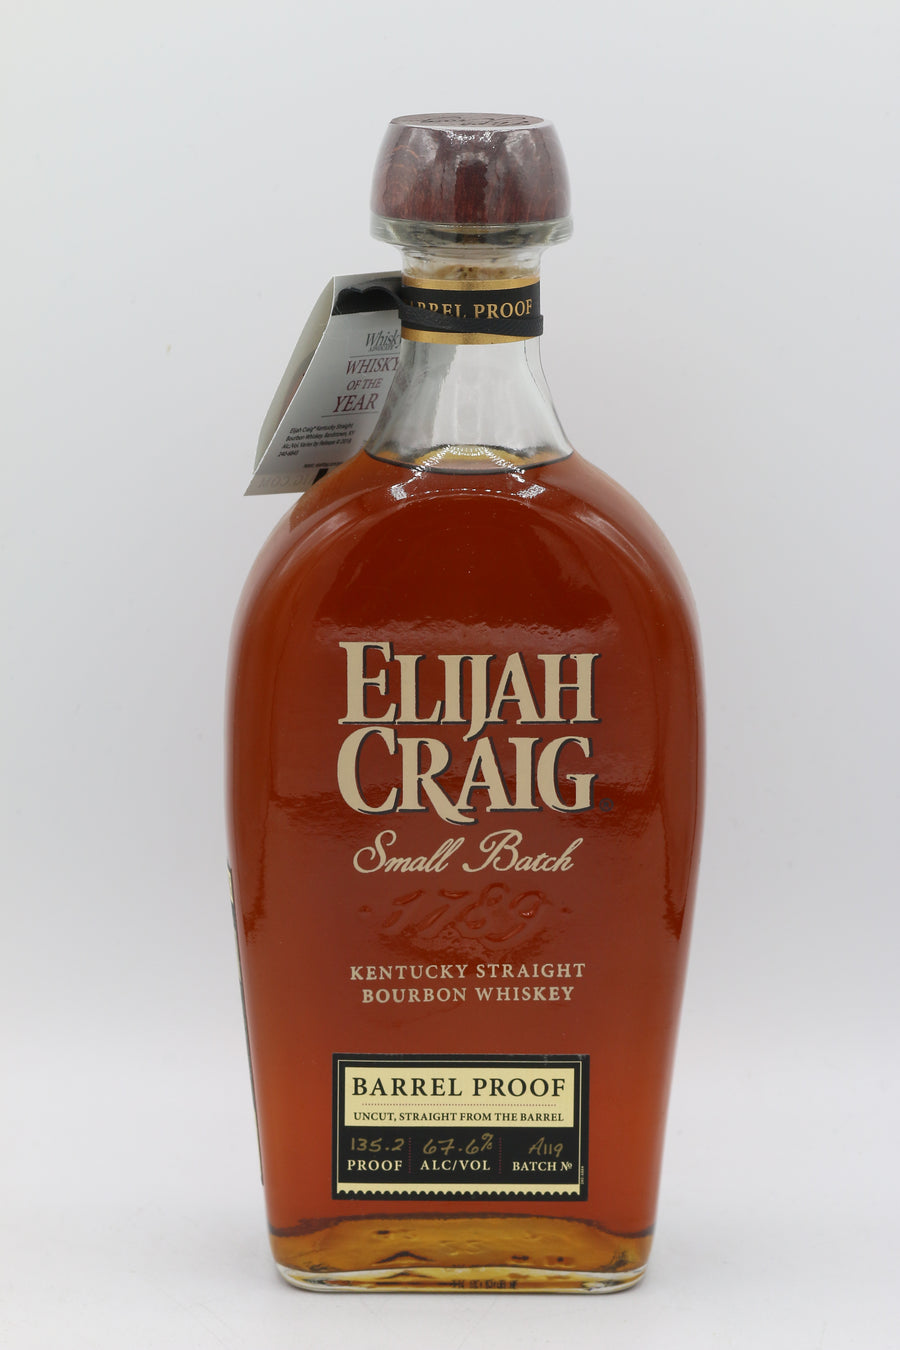 Elijah Craig Barrel Proof 750mL